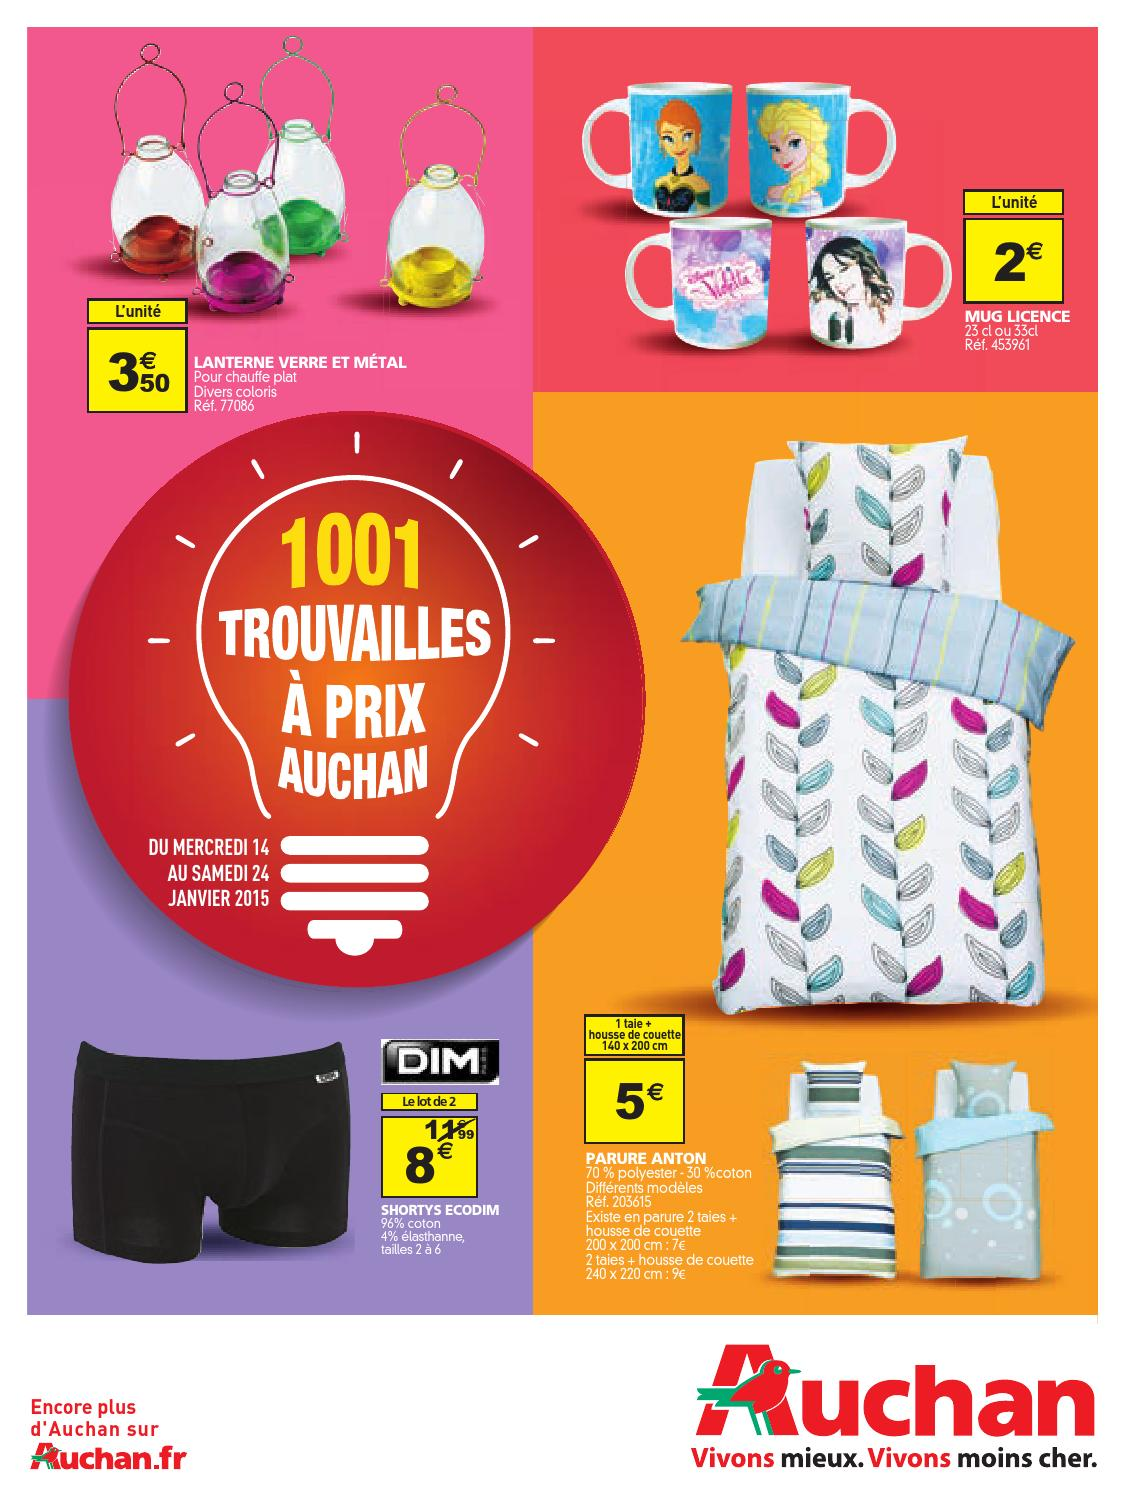 Auchan catalogue 14 24janvier2014 by PromoCatalogues.com - issuu